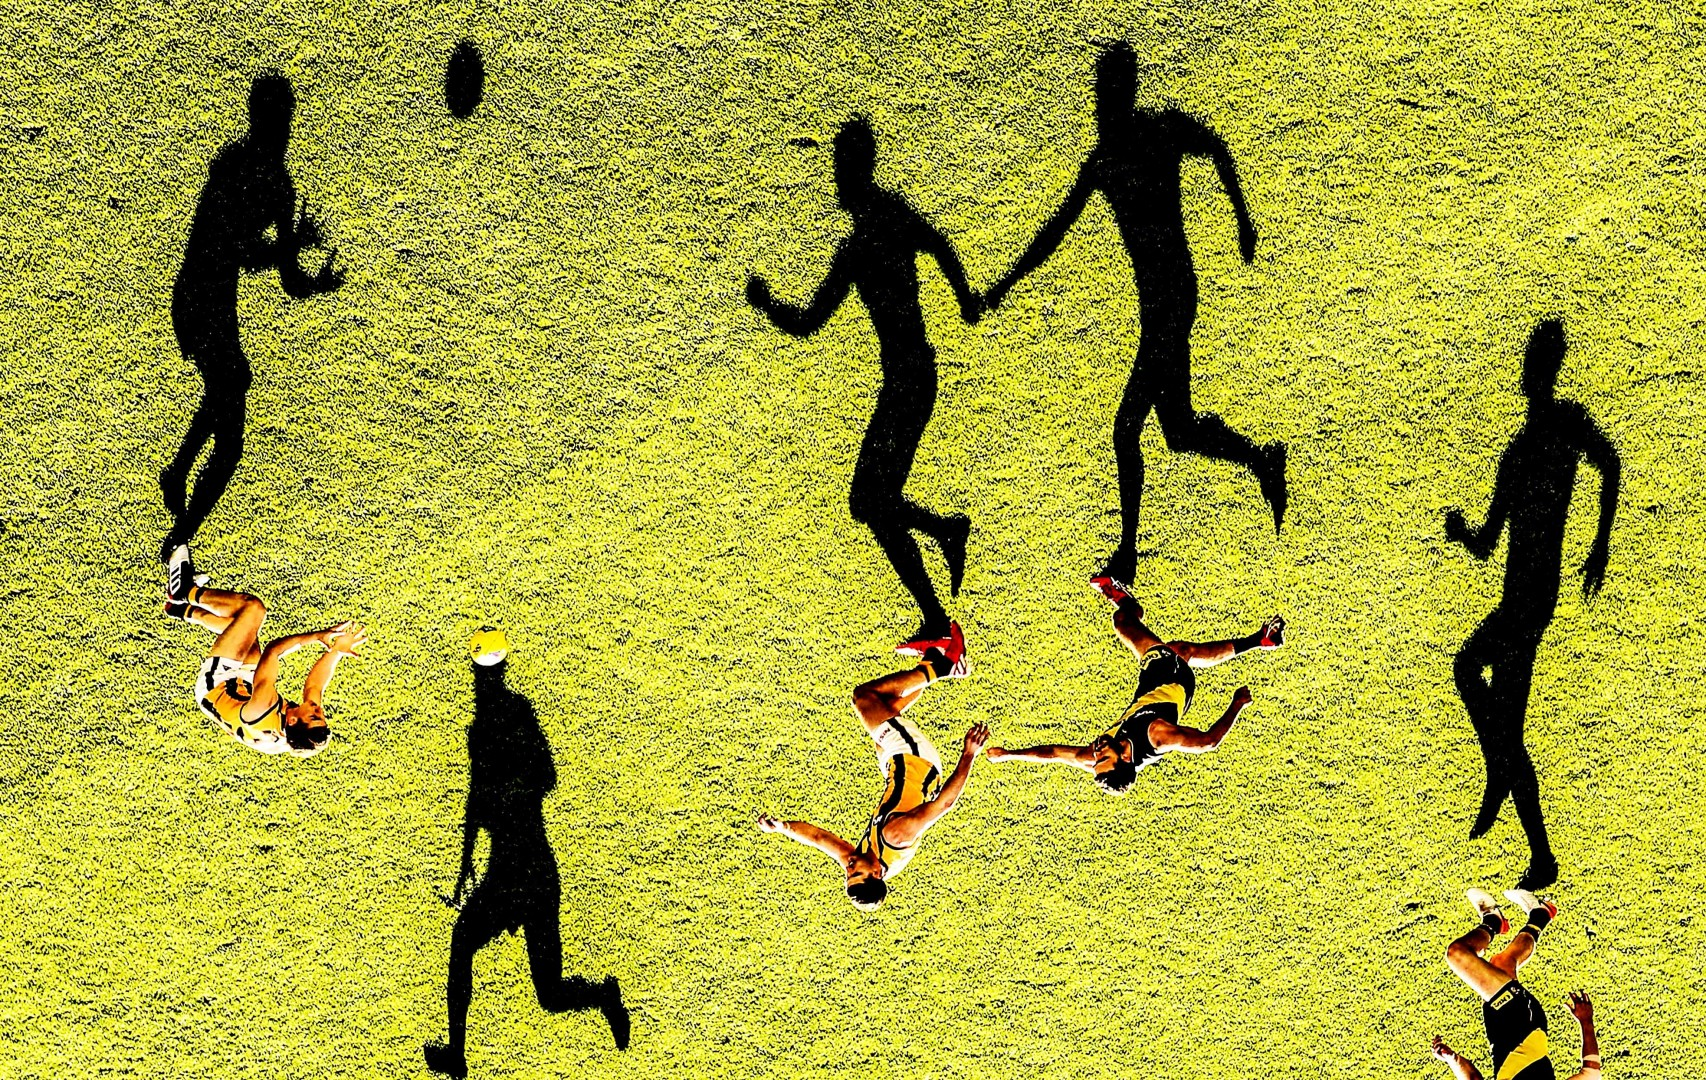 Aussie Rules Football (optimized)